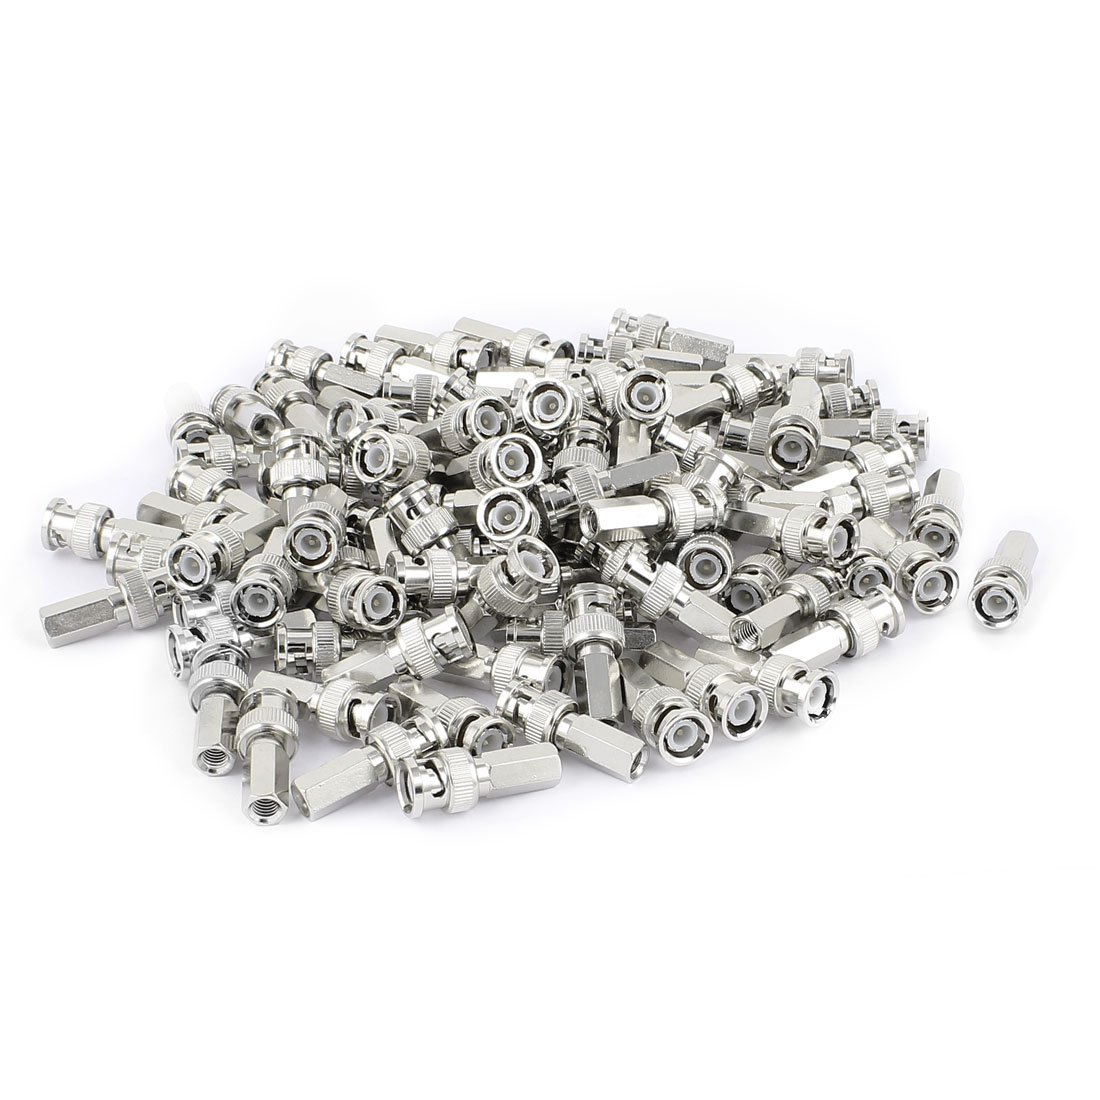 100Pcs Twist On BNC Male RG58/59/60 Coax Coaxial Connector Adapter for CCTV Camera